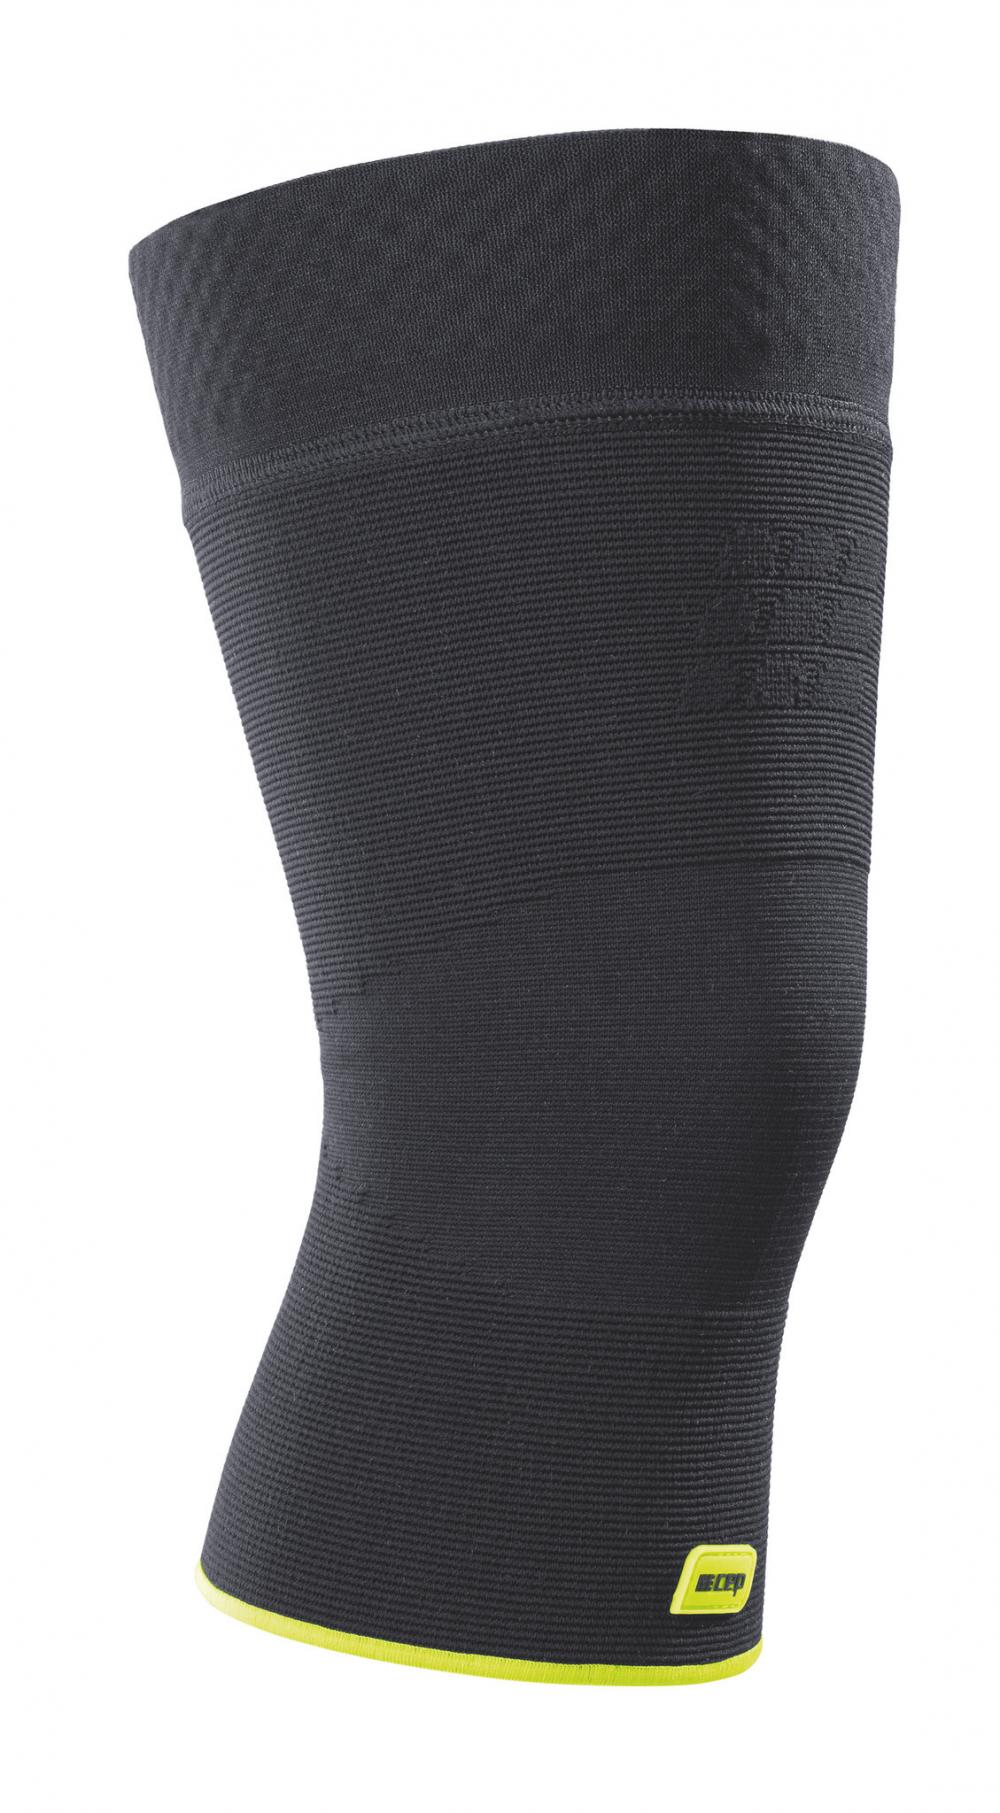 CEP Ortho + Compression Knee Sleeve, Size 6